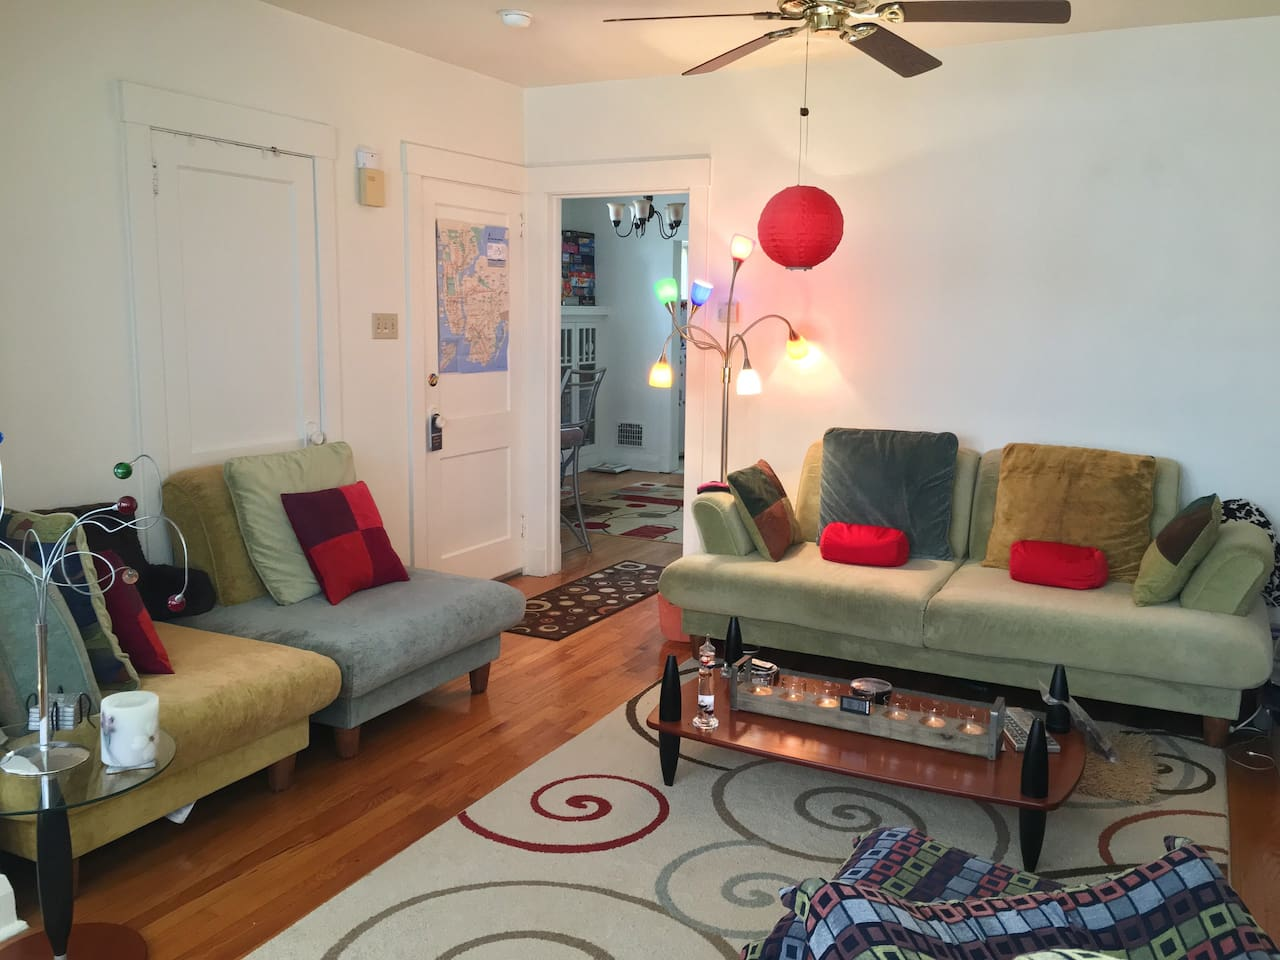 living room (sleeps 2-4 extras) .  sofa arms and backs are removable leaving a firm cushy bed like sleep space wider than a twin/single.  same goes for chairs, backs come off (there are no arms).  room for self inflating queen airbed with foam topper